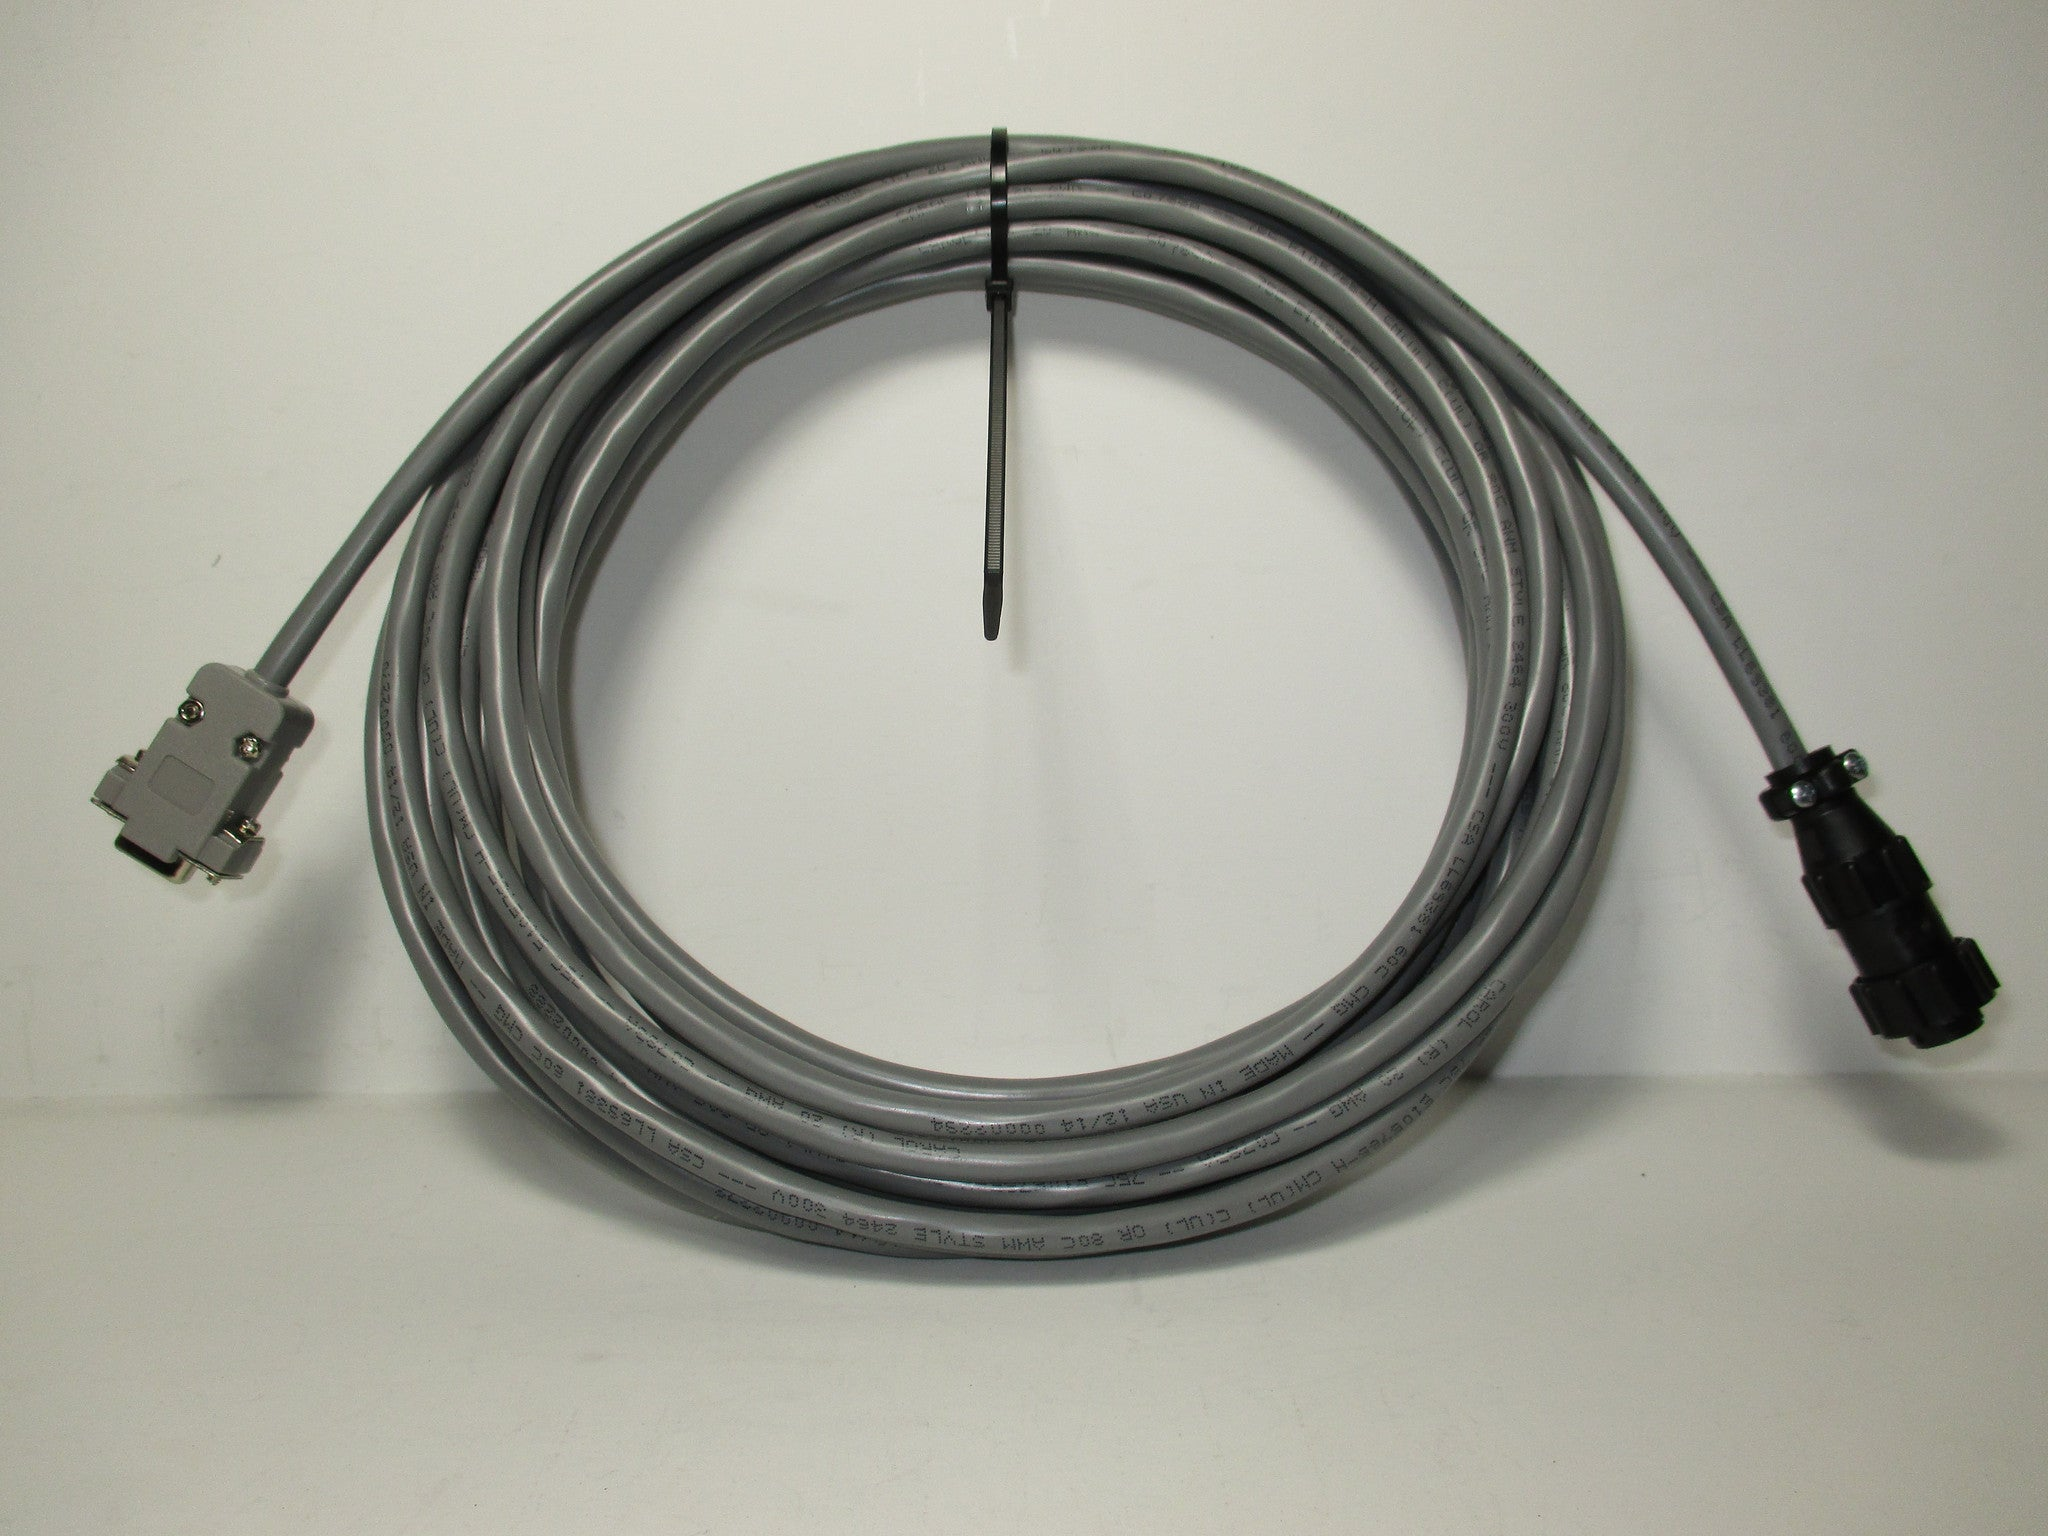 WORLDWIDE TO MAHA DYNO CABLE, 30', P.N. 510 2214